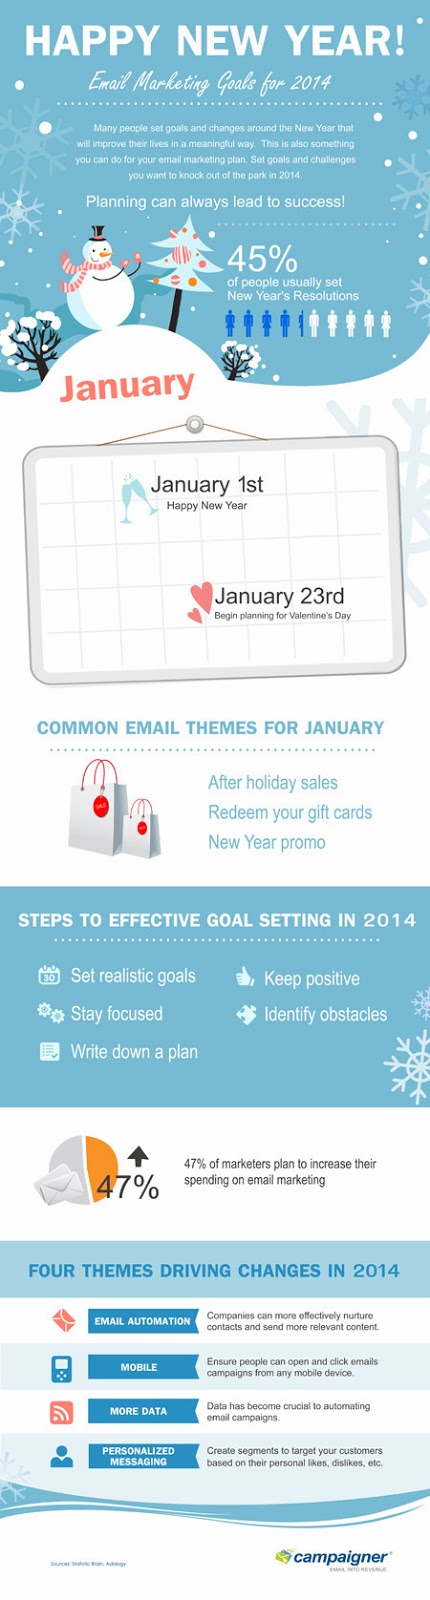 Campaigner Email Marketing January Planning Tips